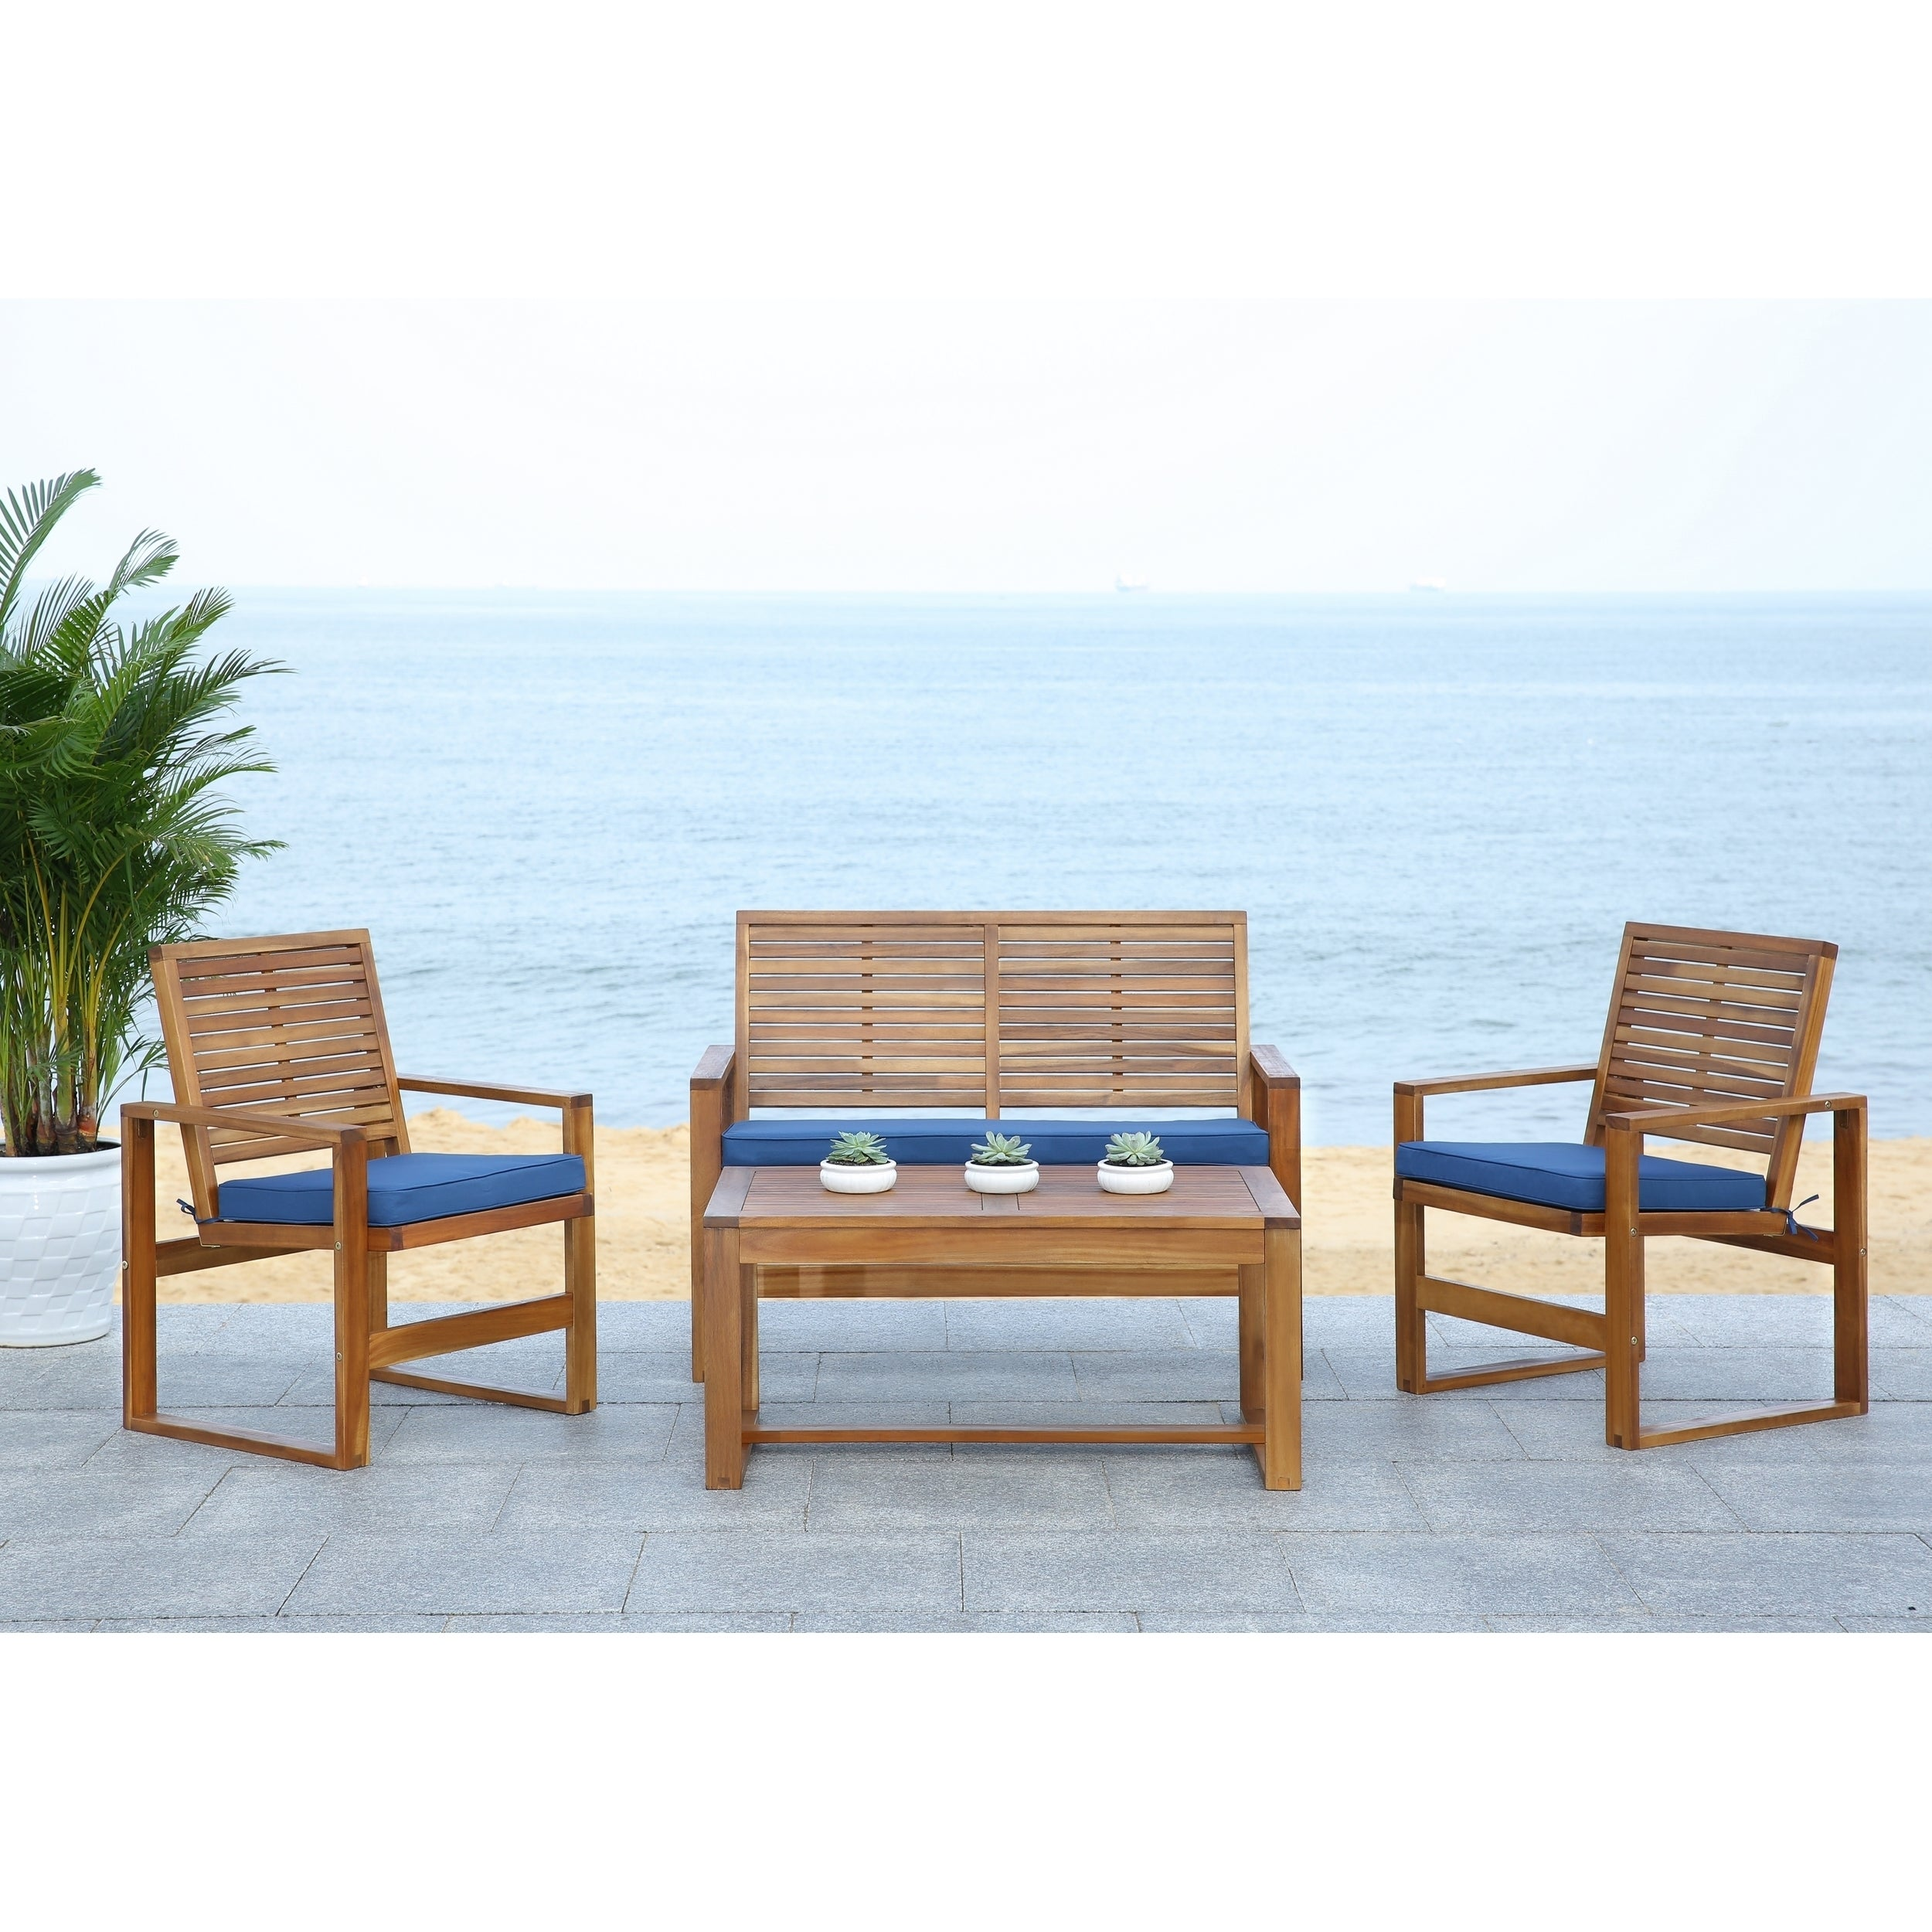 Shop Safavieh Outdoor Living Ozark Brown/ Navy Acacia Wood 4 Piece Patio Set    Free Shipping Today   Overstock.com   8130017